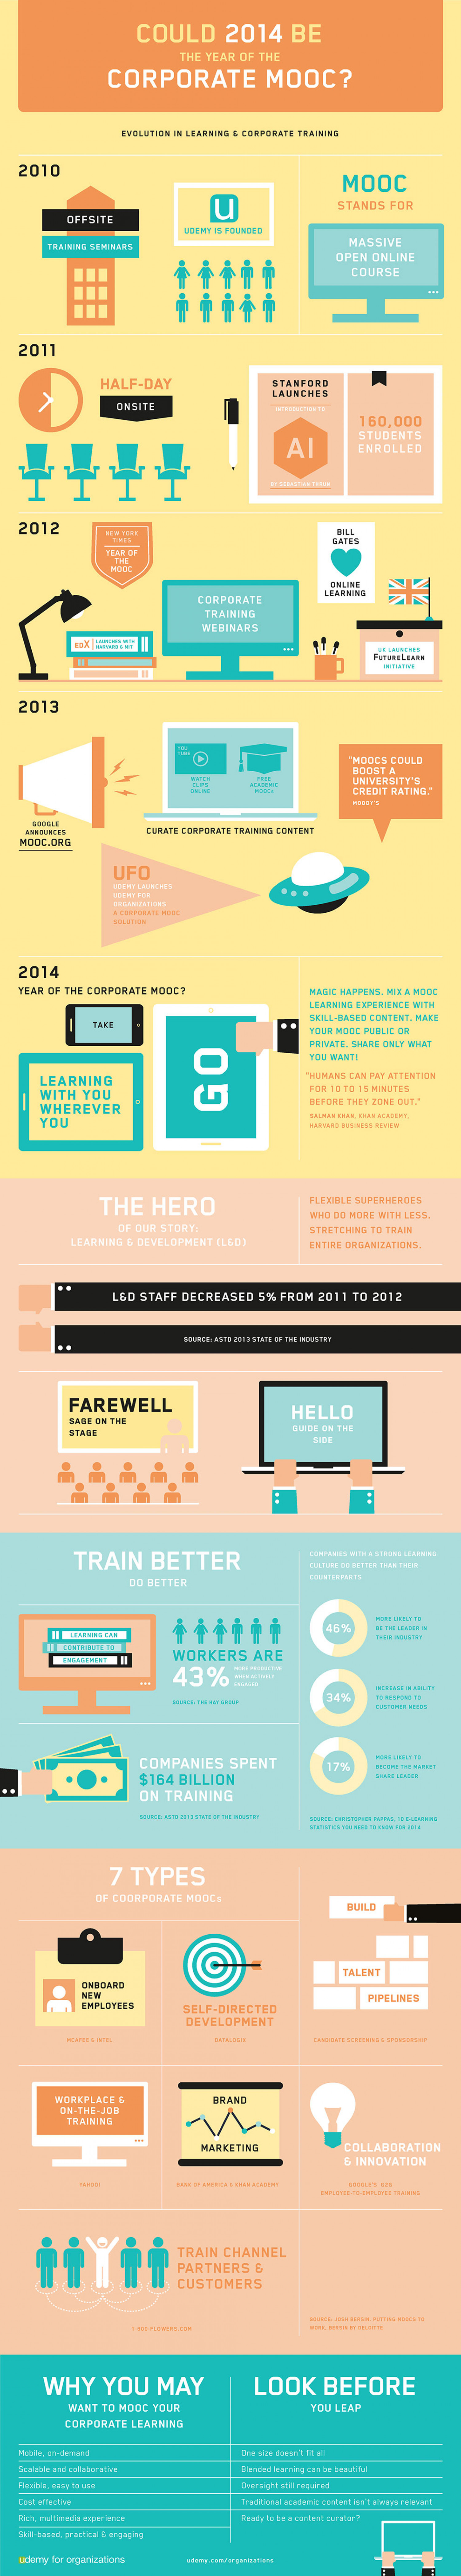 Could 2014 be the Year of the Corporate MOOC? Infographic